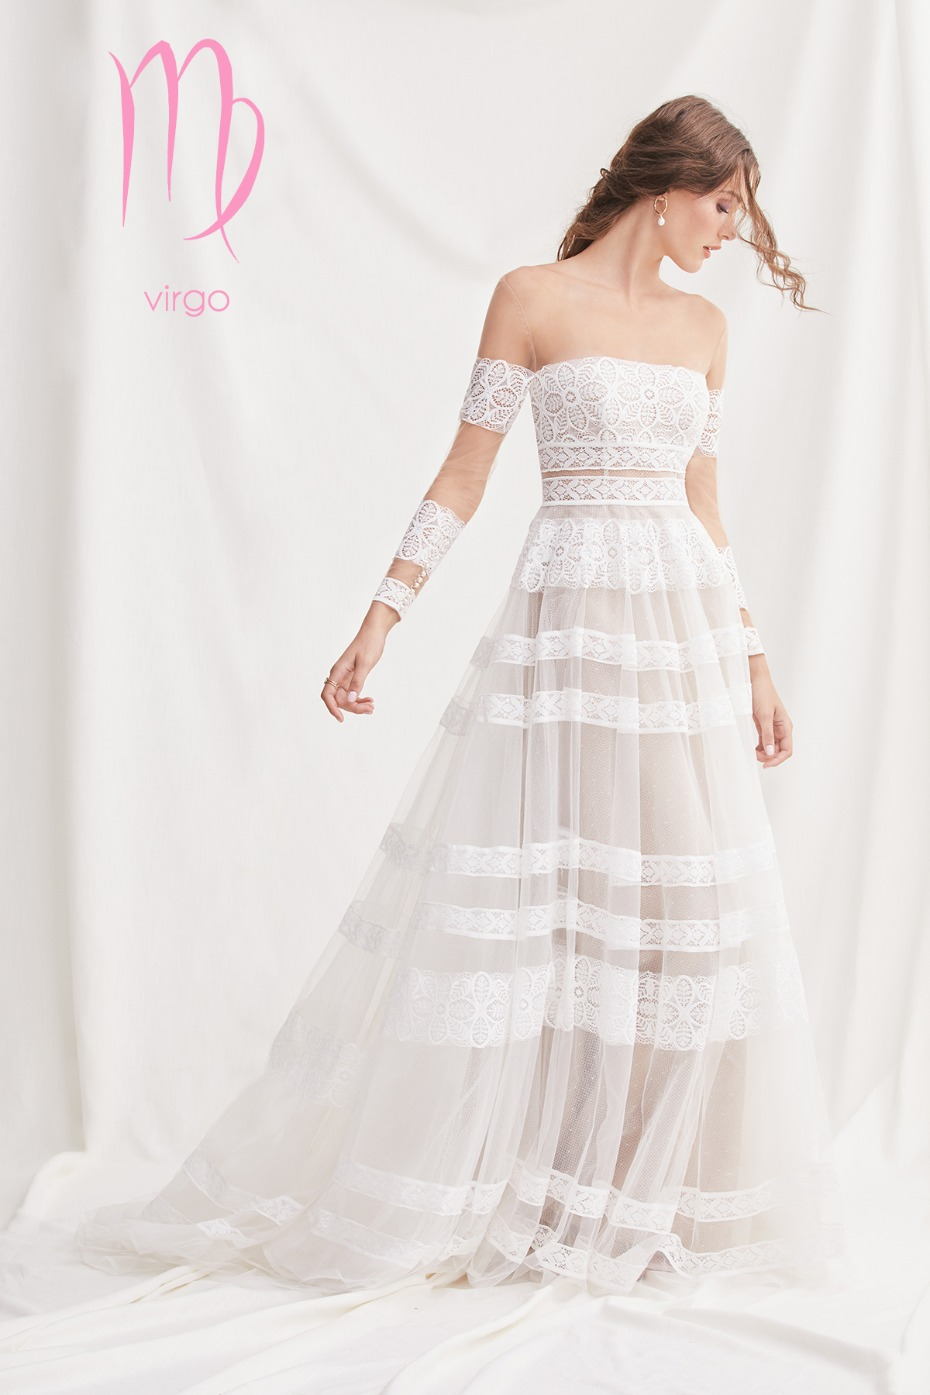 boho inspired gown perfect for the virgo Zodiac